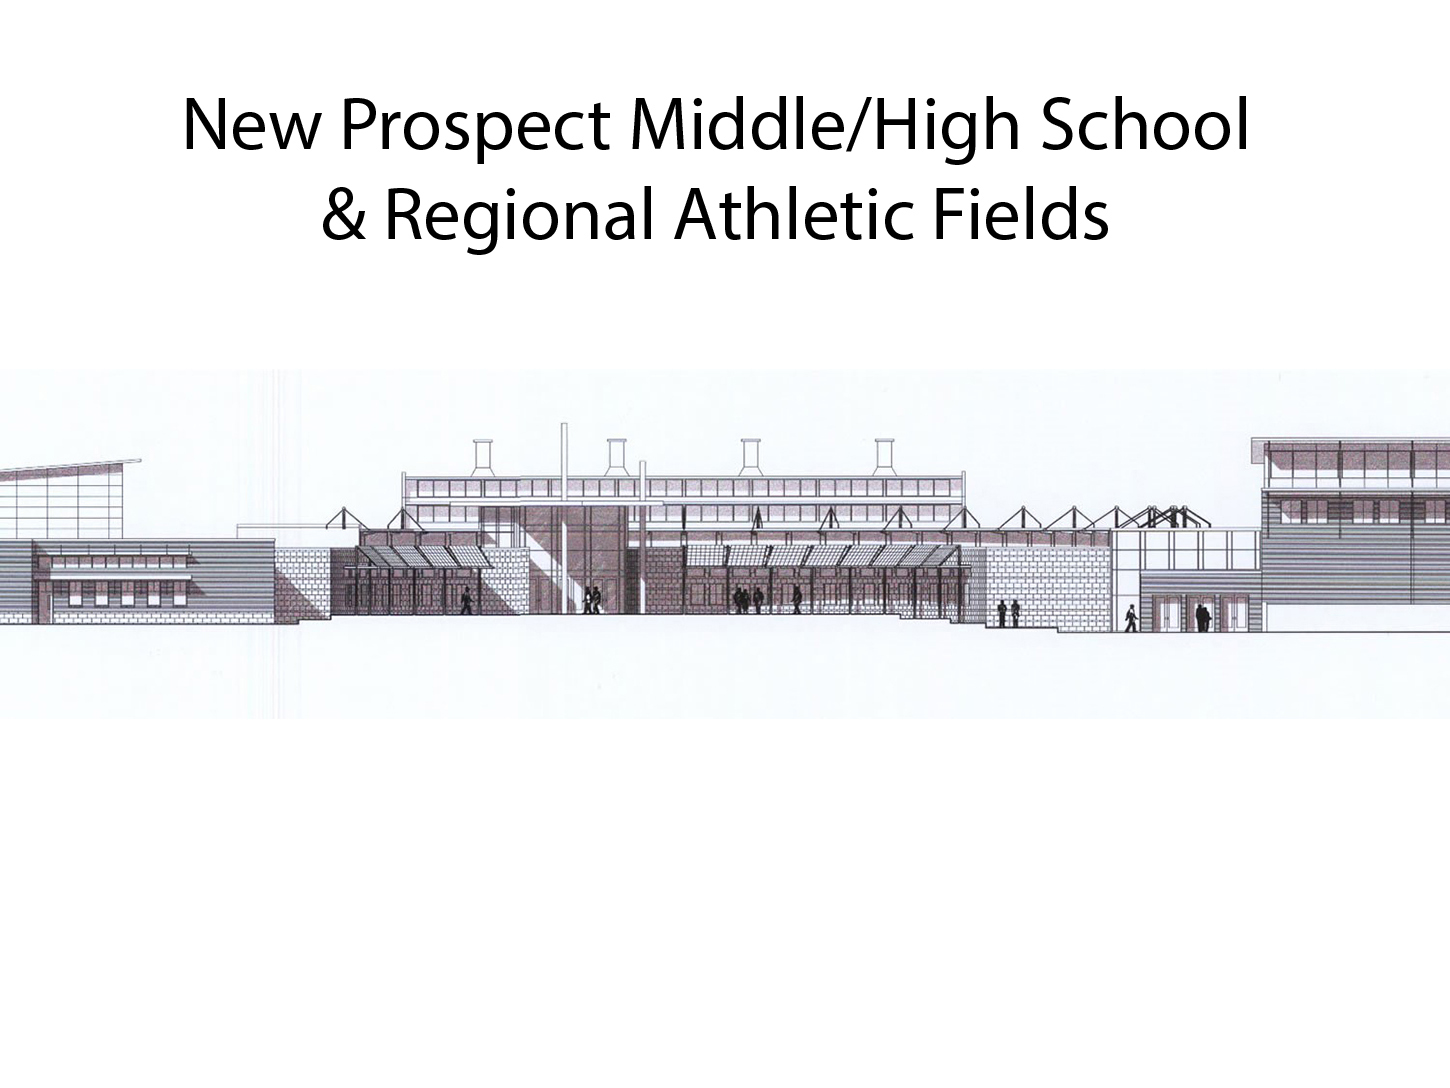 31-montrose-fort_20collins-new_20prospect_20middle_20high_20school-new_20houses_20for_20sale